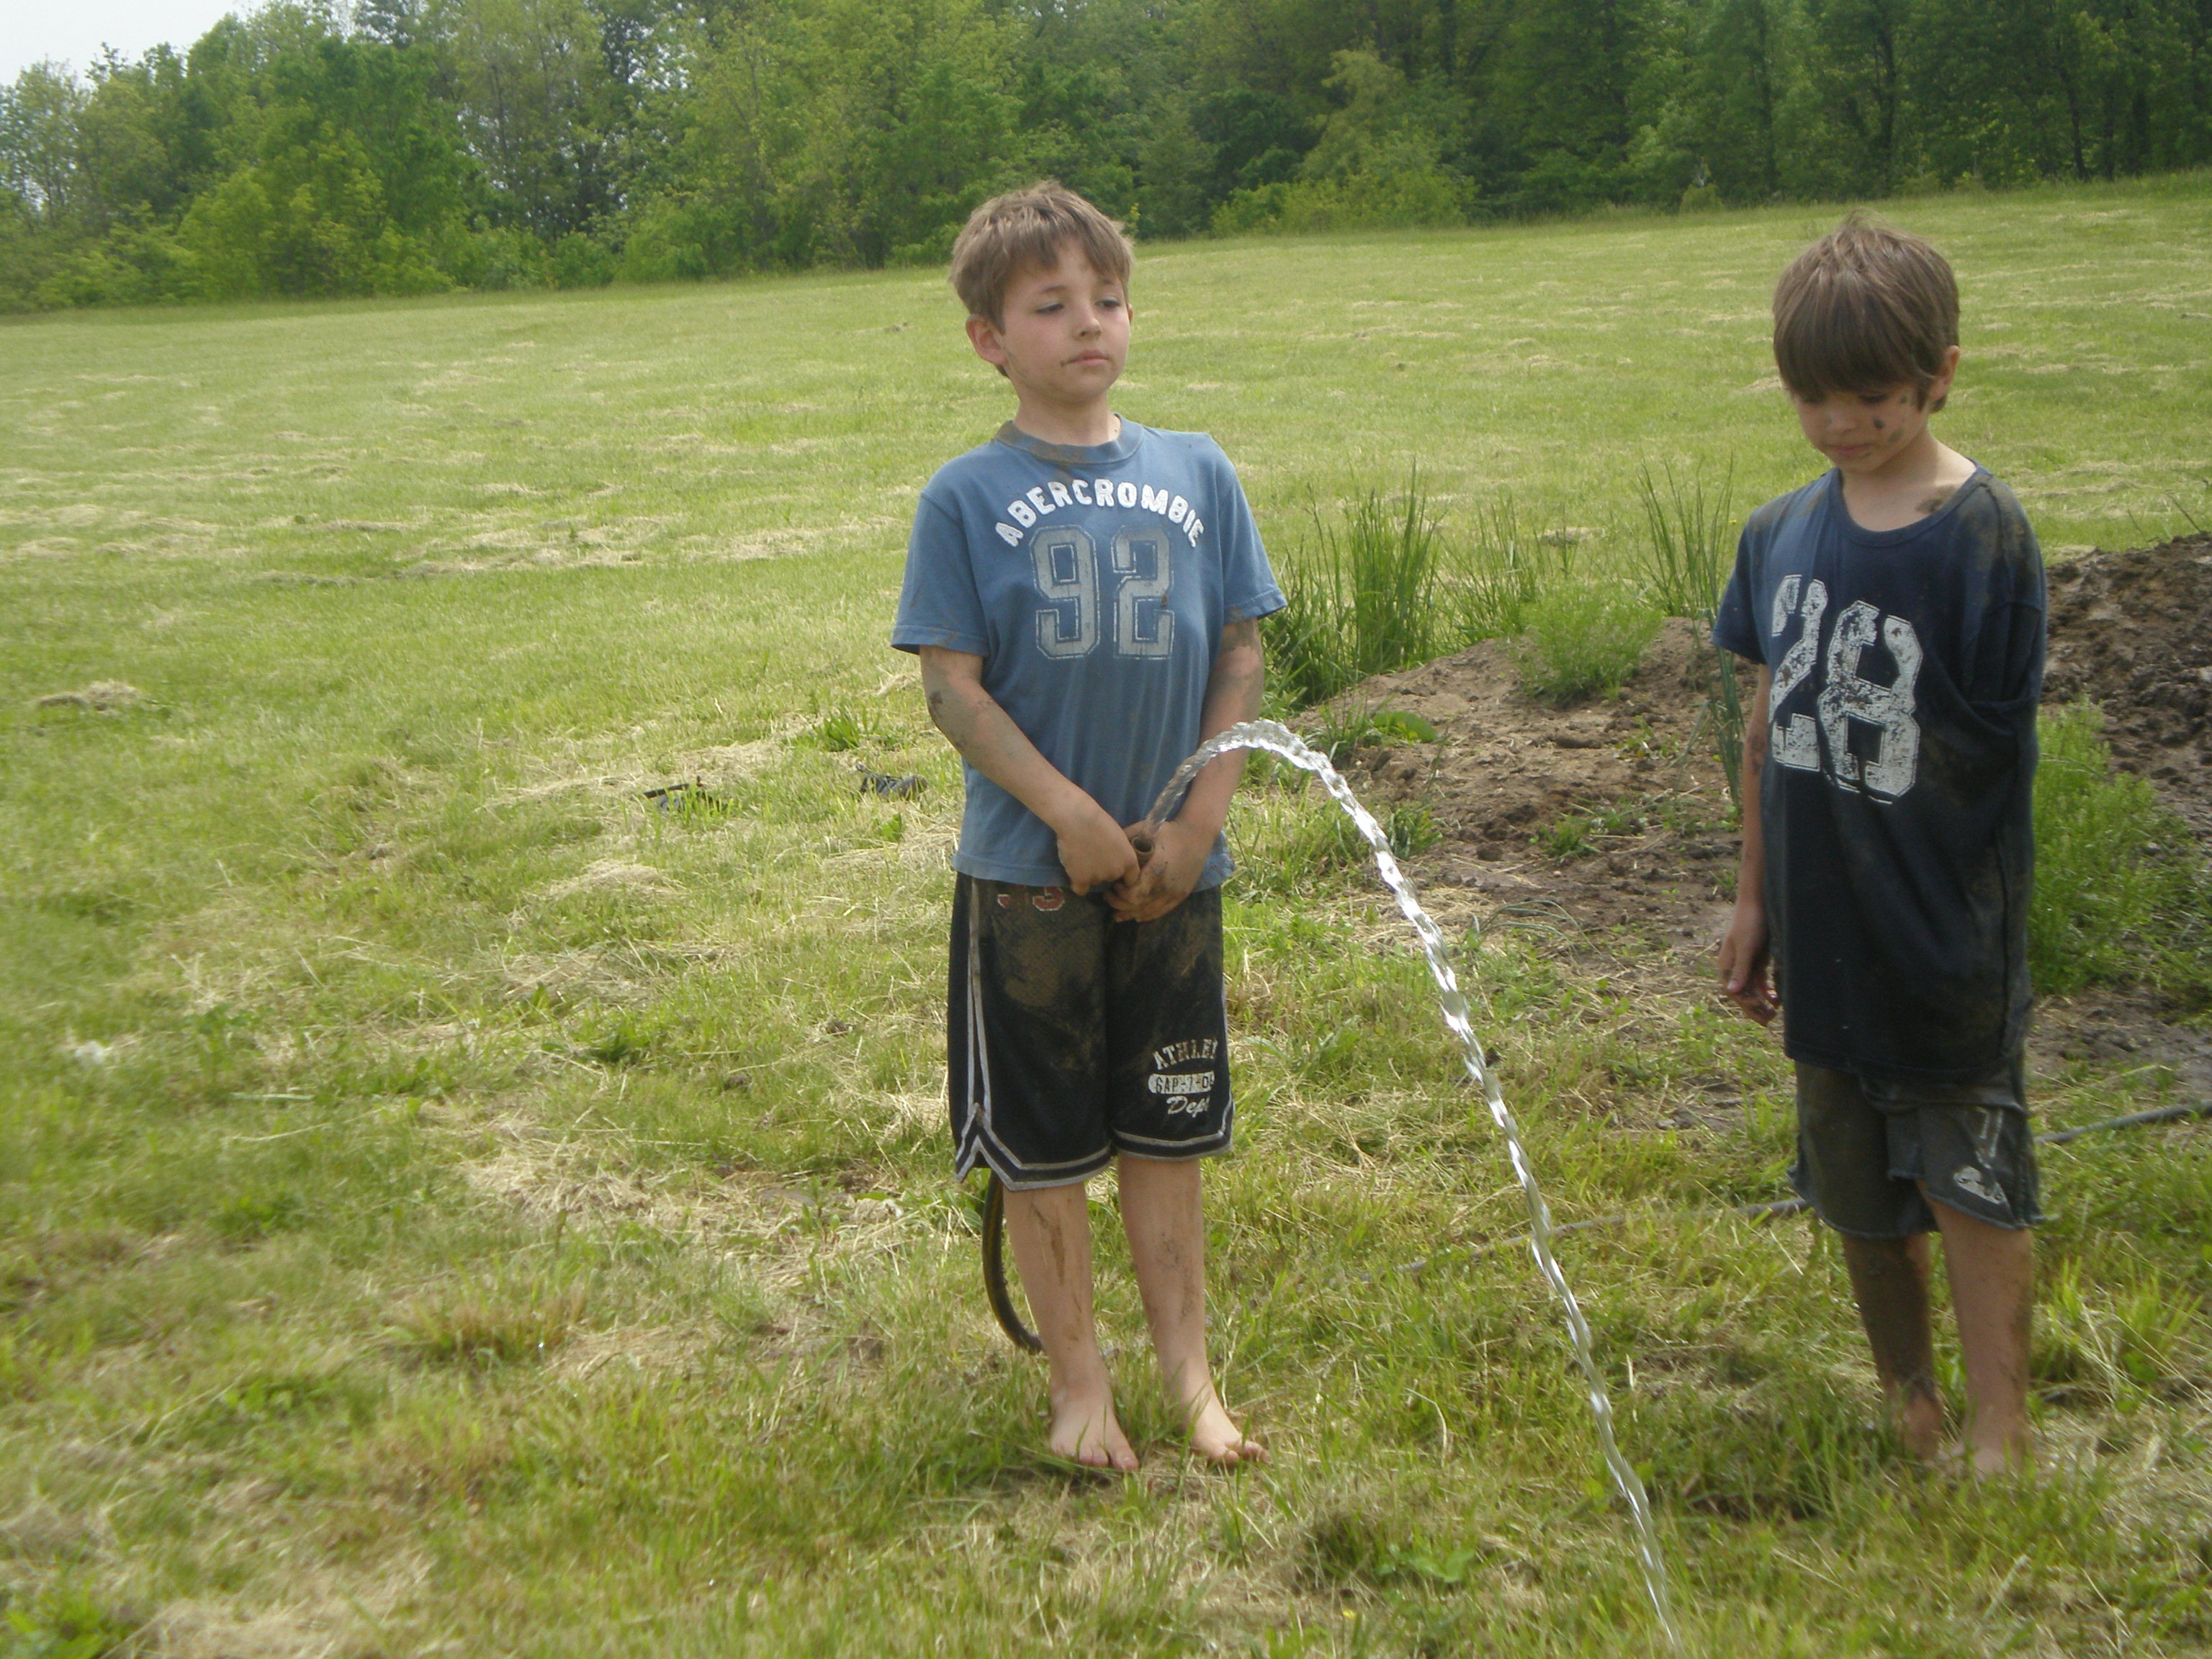 Peeing through a hose